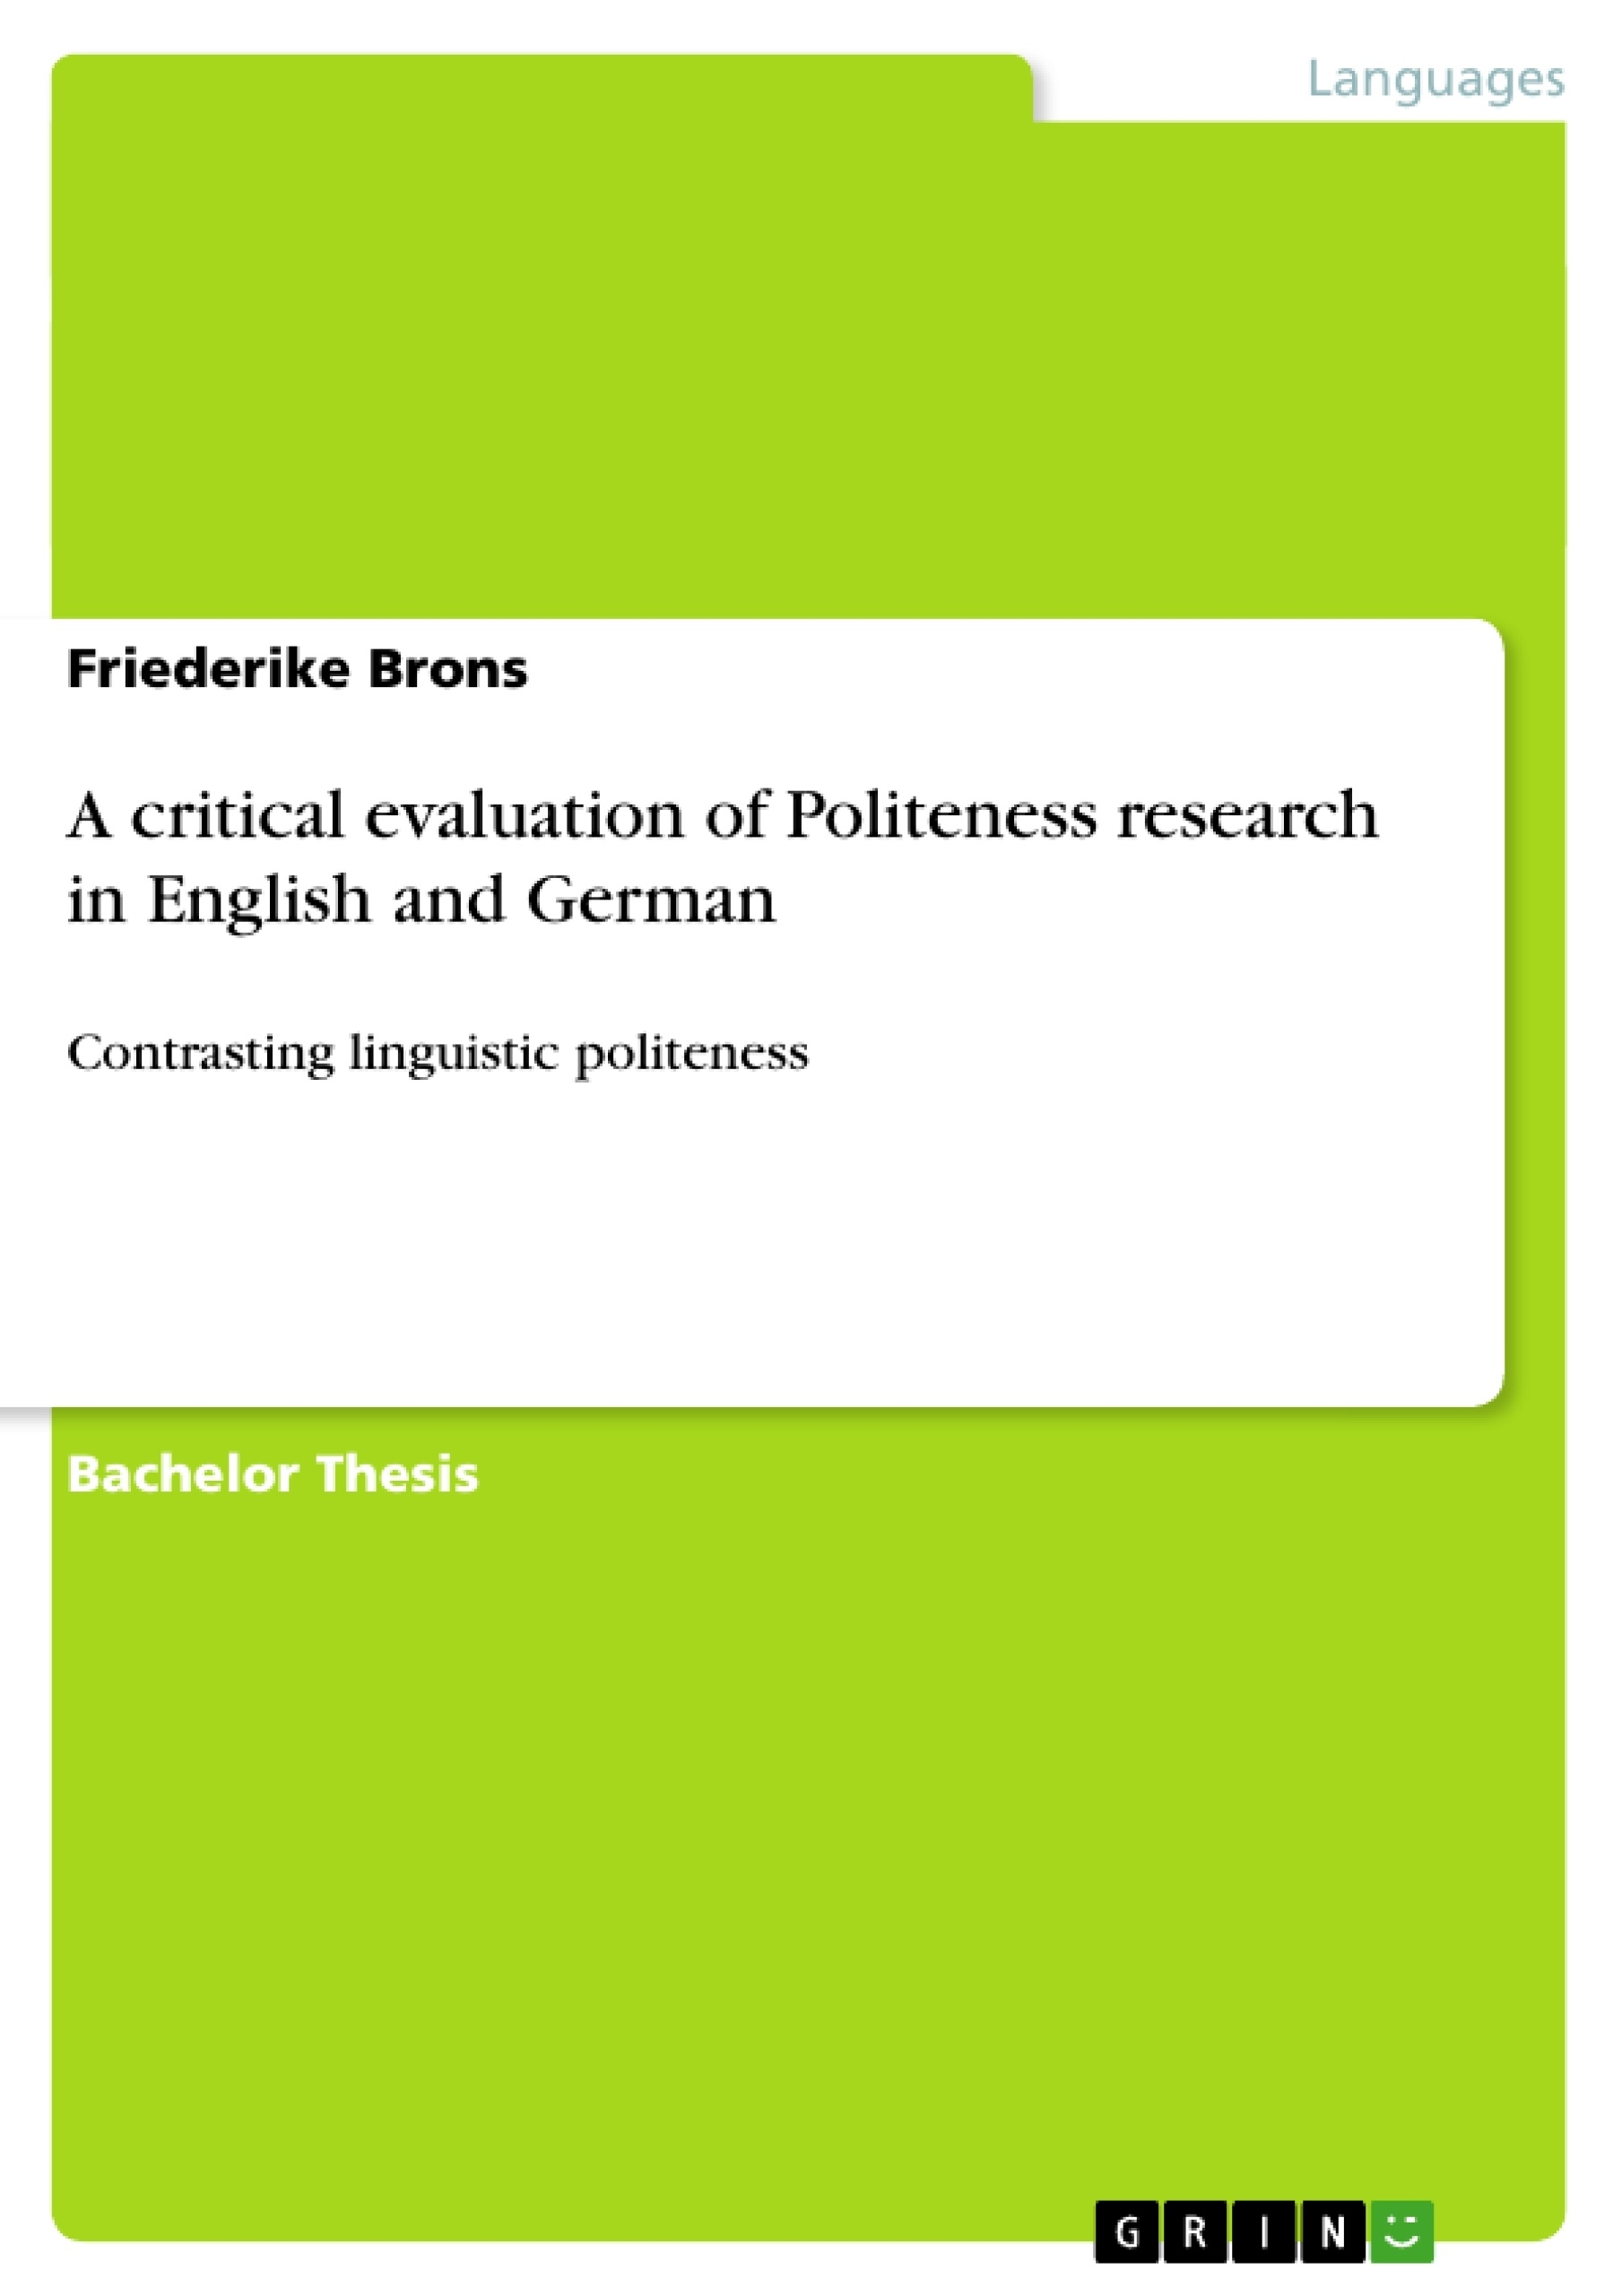 Title: A critical evaluation of Politeness research in English and German